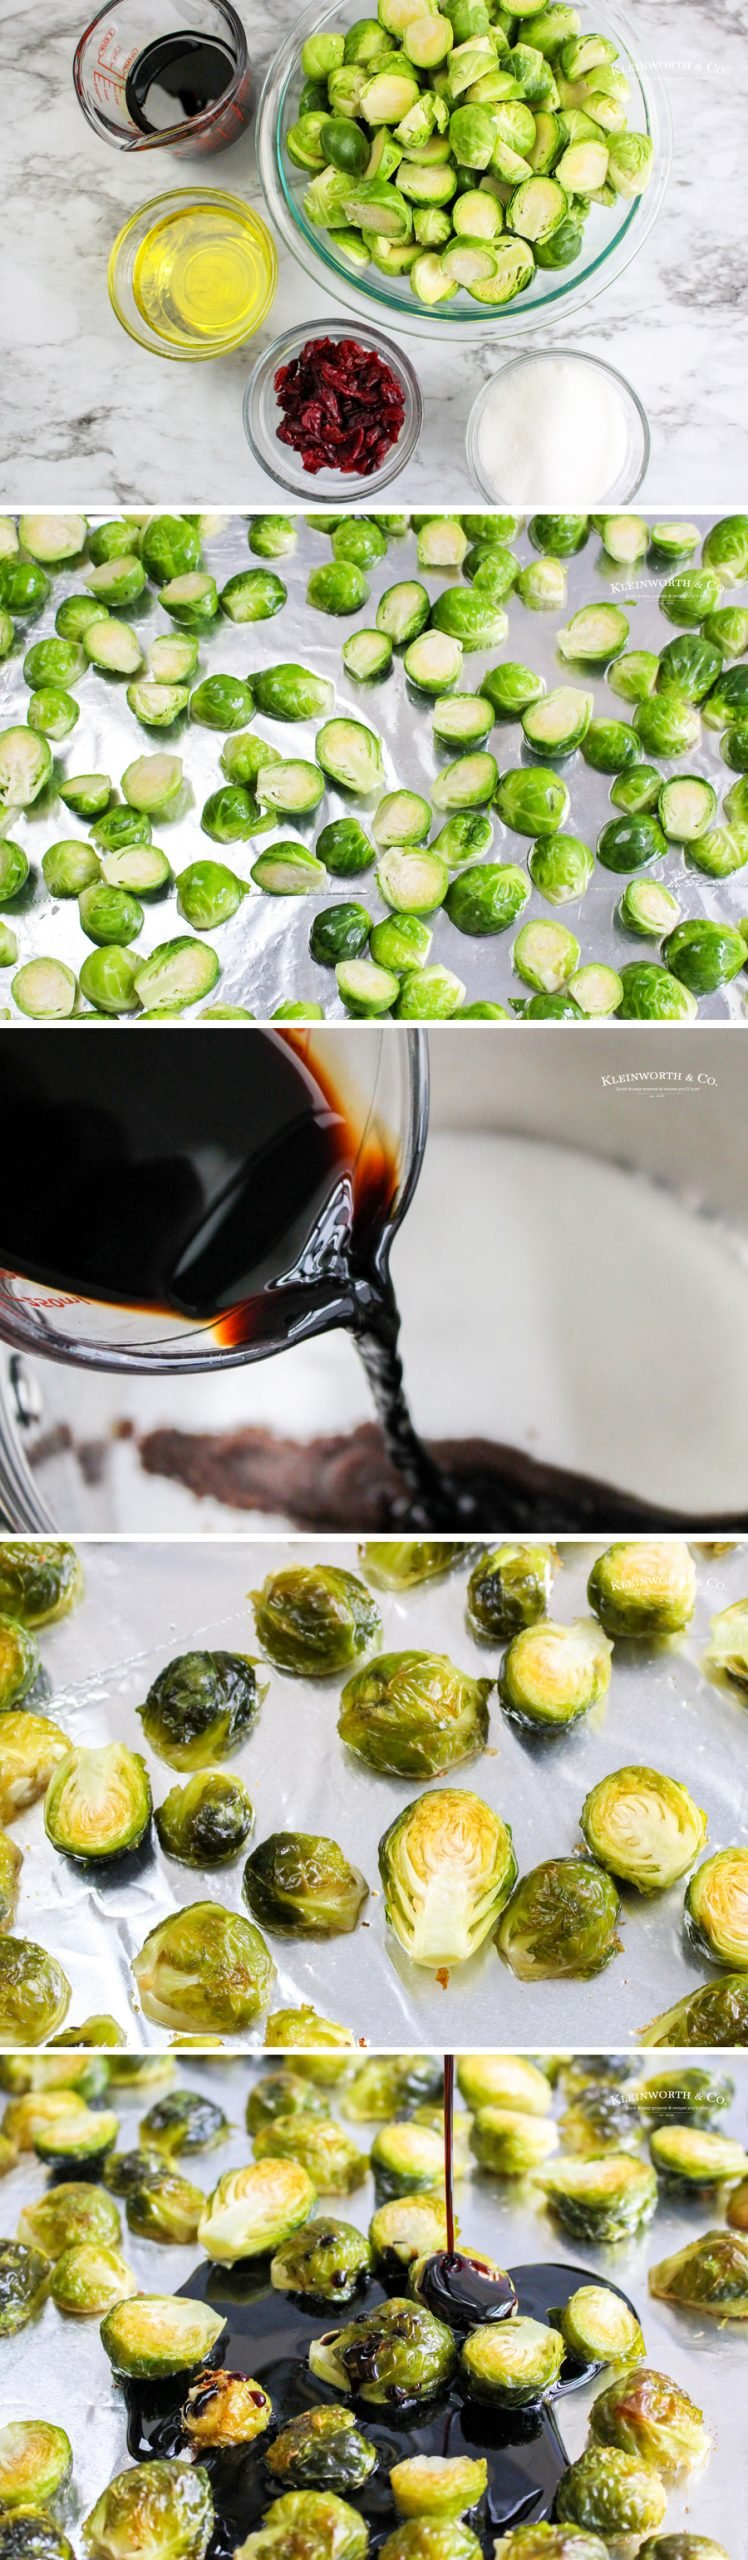 how to make Balsamic Brussel Sprouts roasted with cranberries